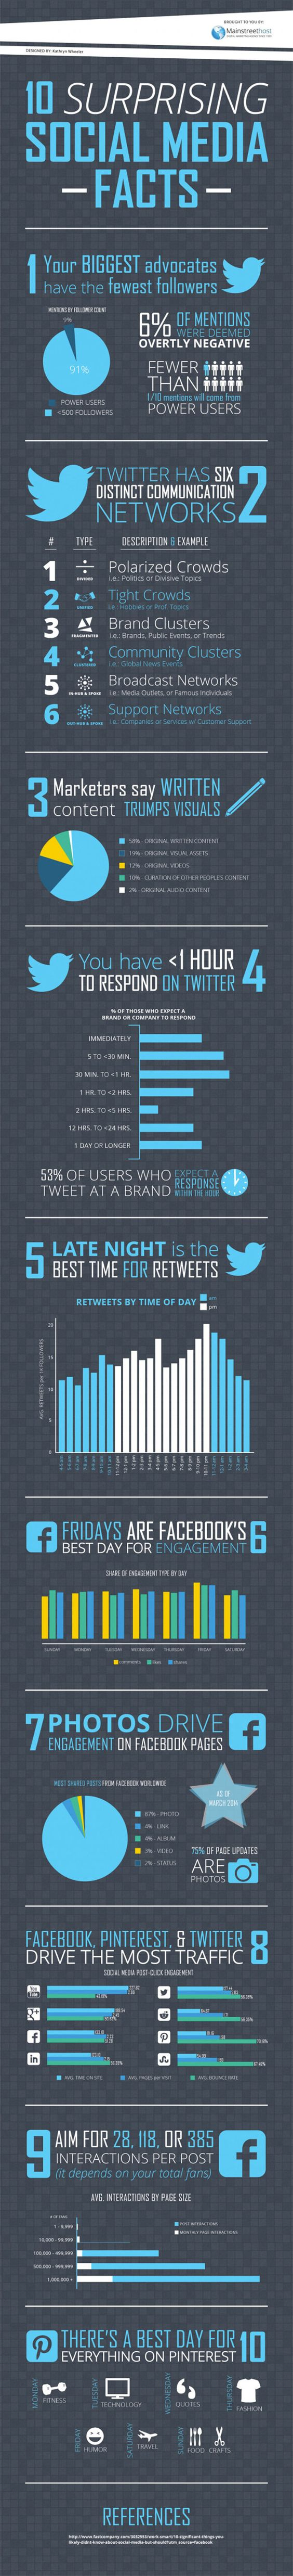 10 Surprising Things You Should Know About #SocialMedia #Infographic Did you know Fridays are funny on #Pinterest? Or that brands have one hour to respond to someone on Twitter? Or that Twitter has six distinct communication networks?